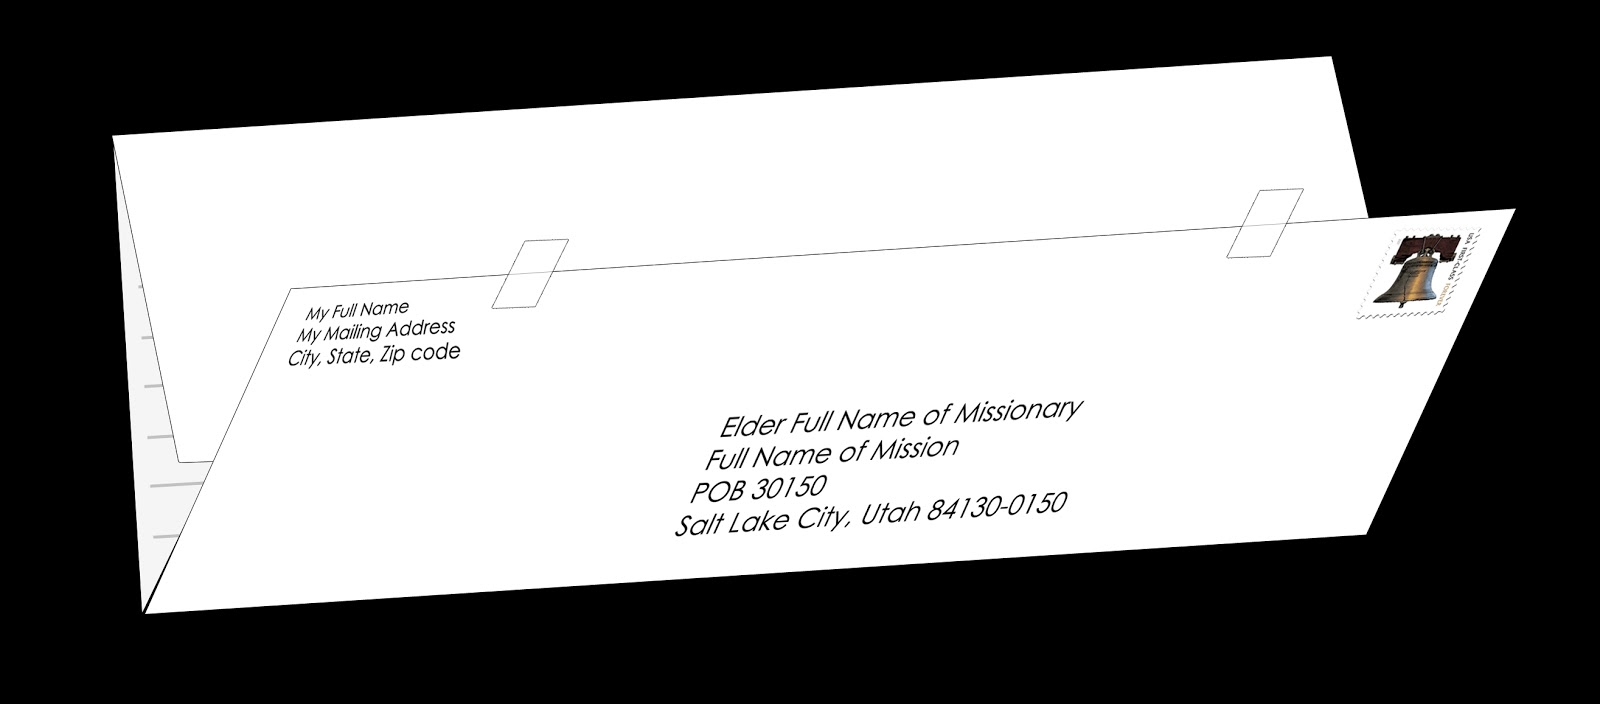 ... the image of the LDS Missionary Pouch Mail Example for a larger size